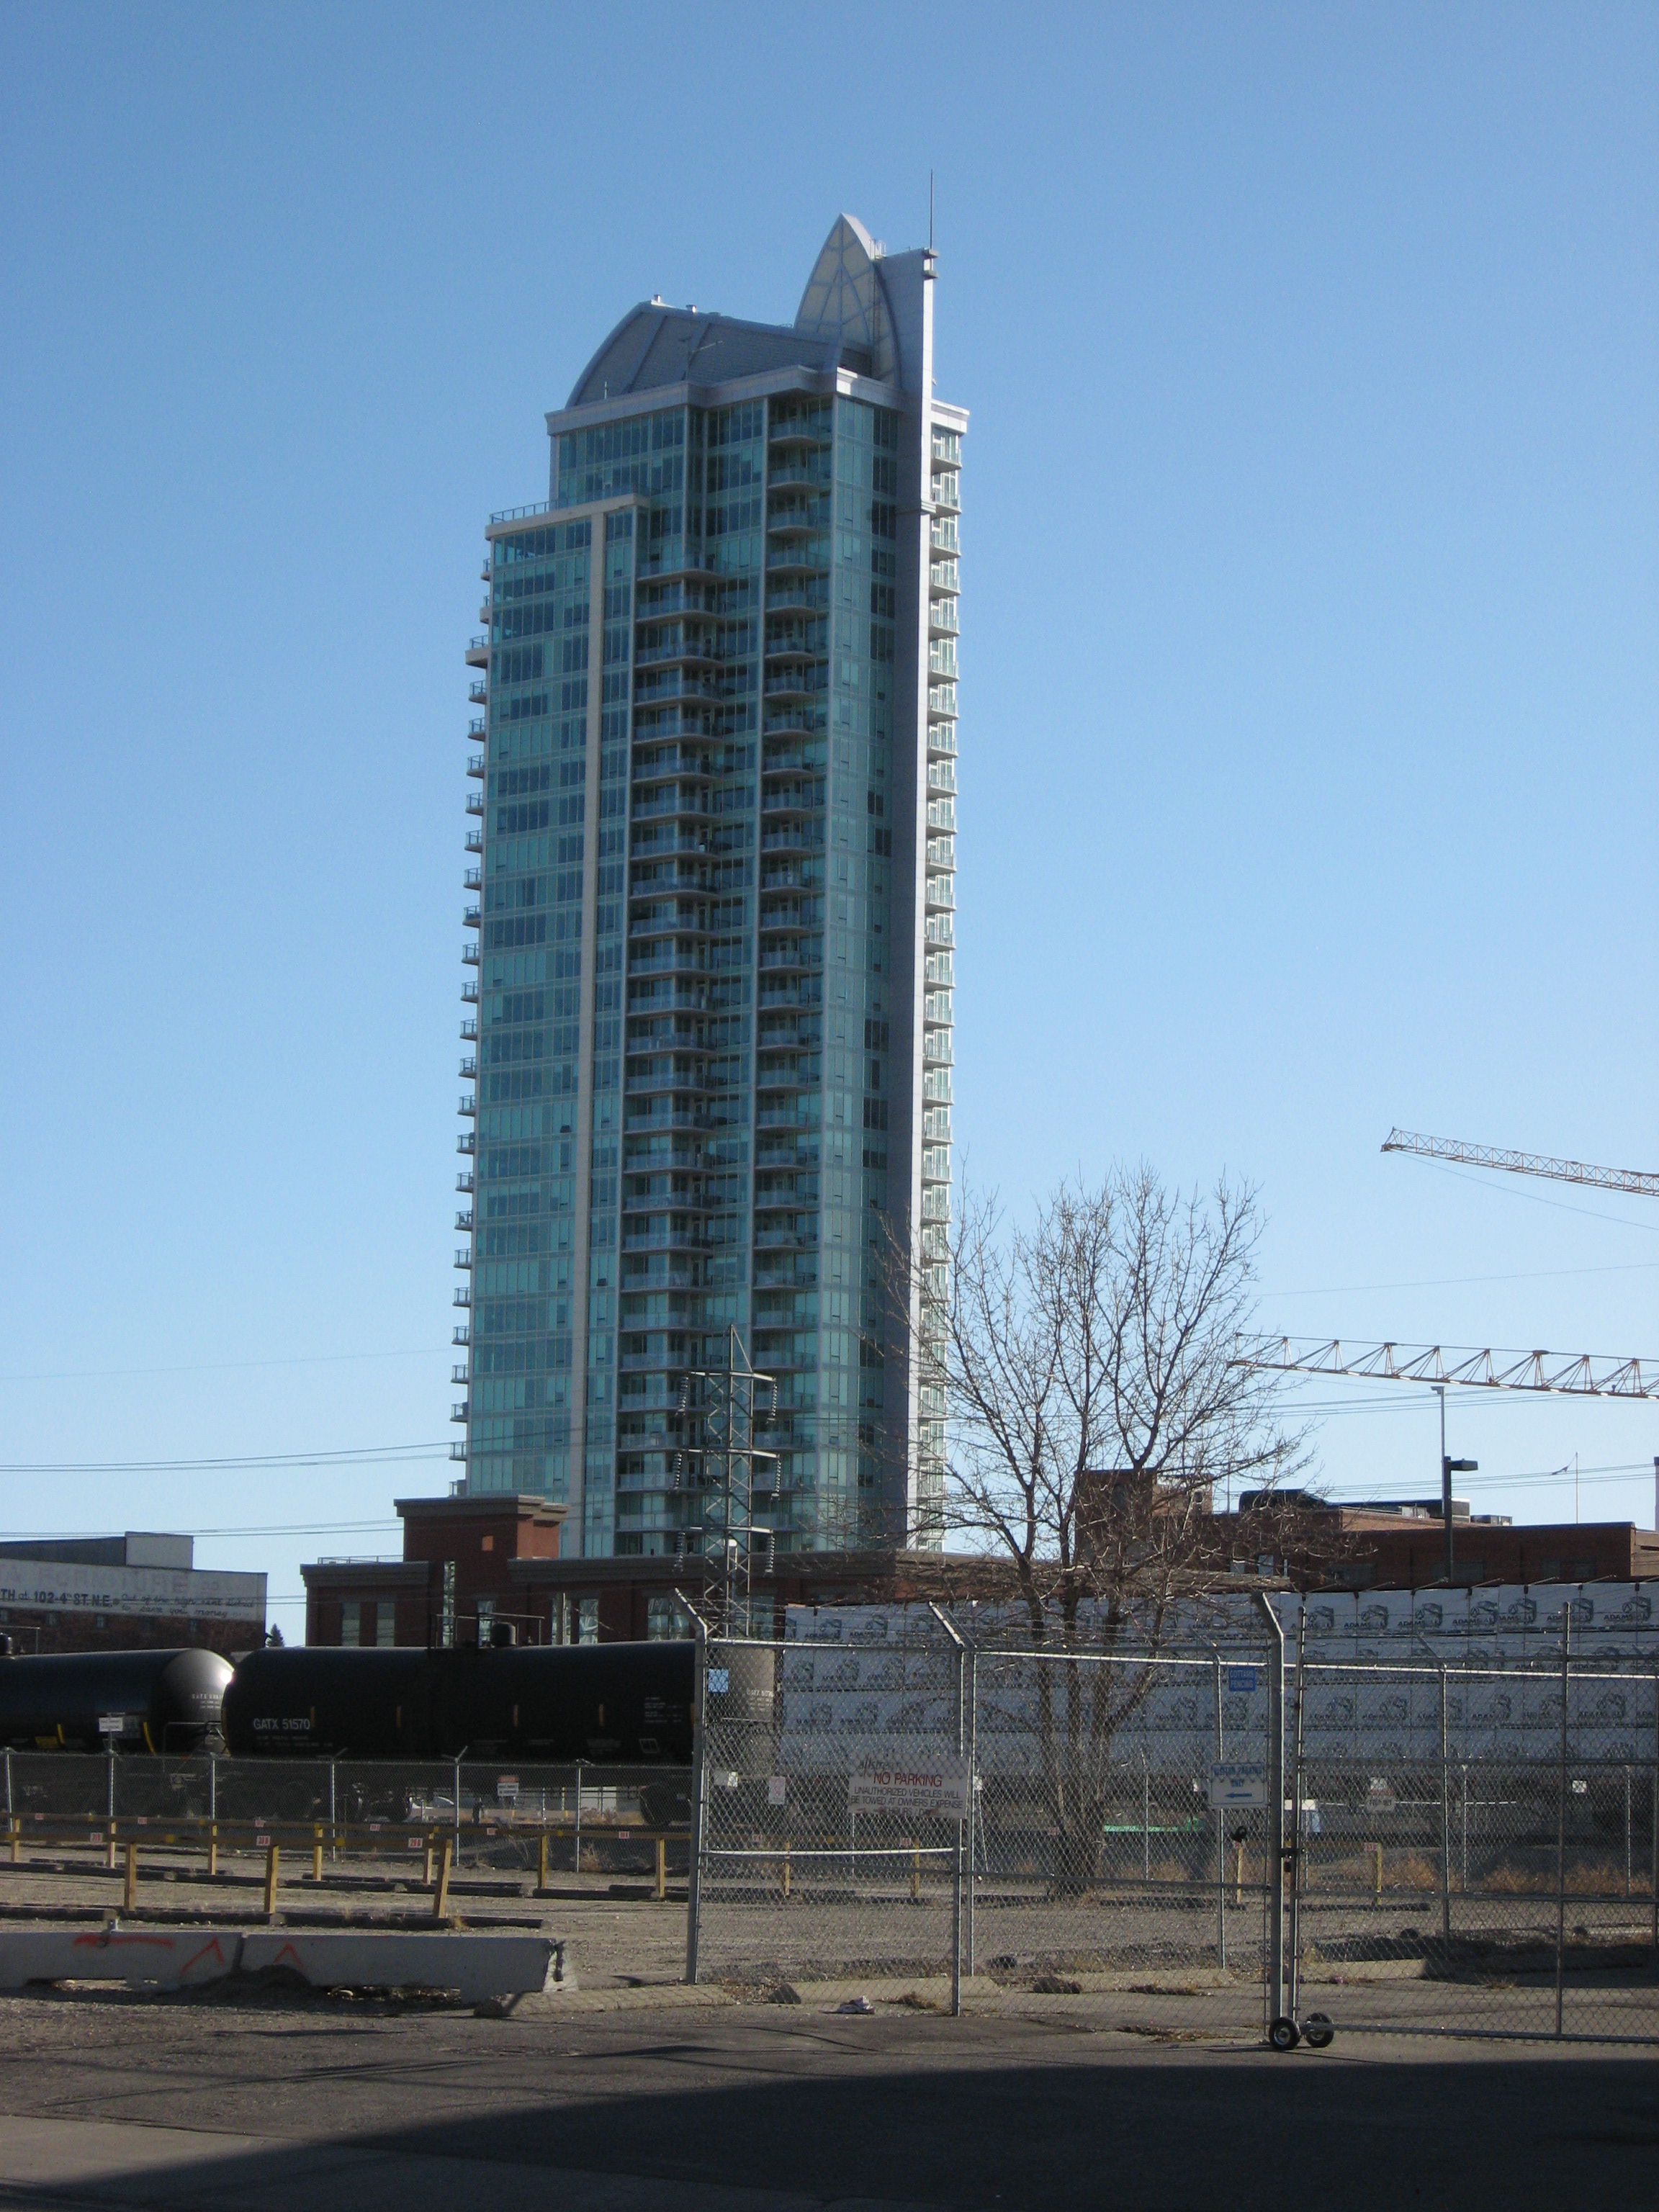 This is an older photo of the Arriva condo which was the first condo to be built in Victoria Park one of Calgary's oldest communities.  It was designed by local architects BKDI and was suppose to have 3 towers but went bankrupt.  However, it has been bought out of receivership and a new tower is planned next to it, however, it won't be a sister design.